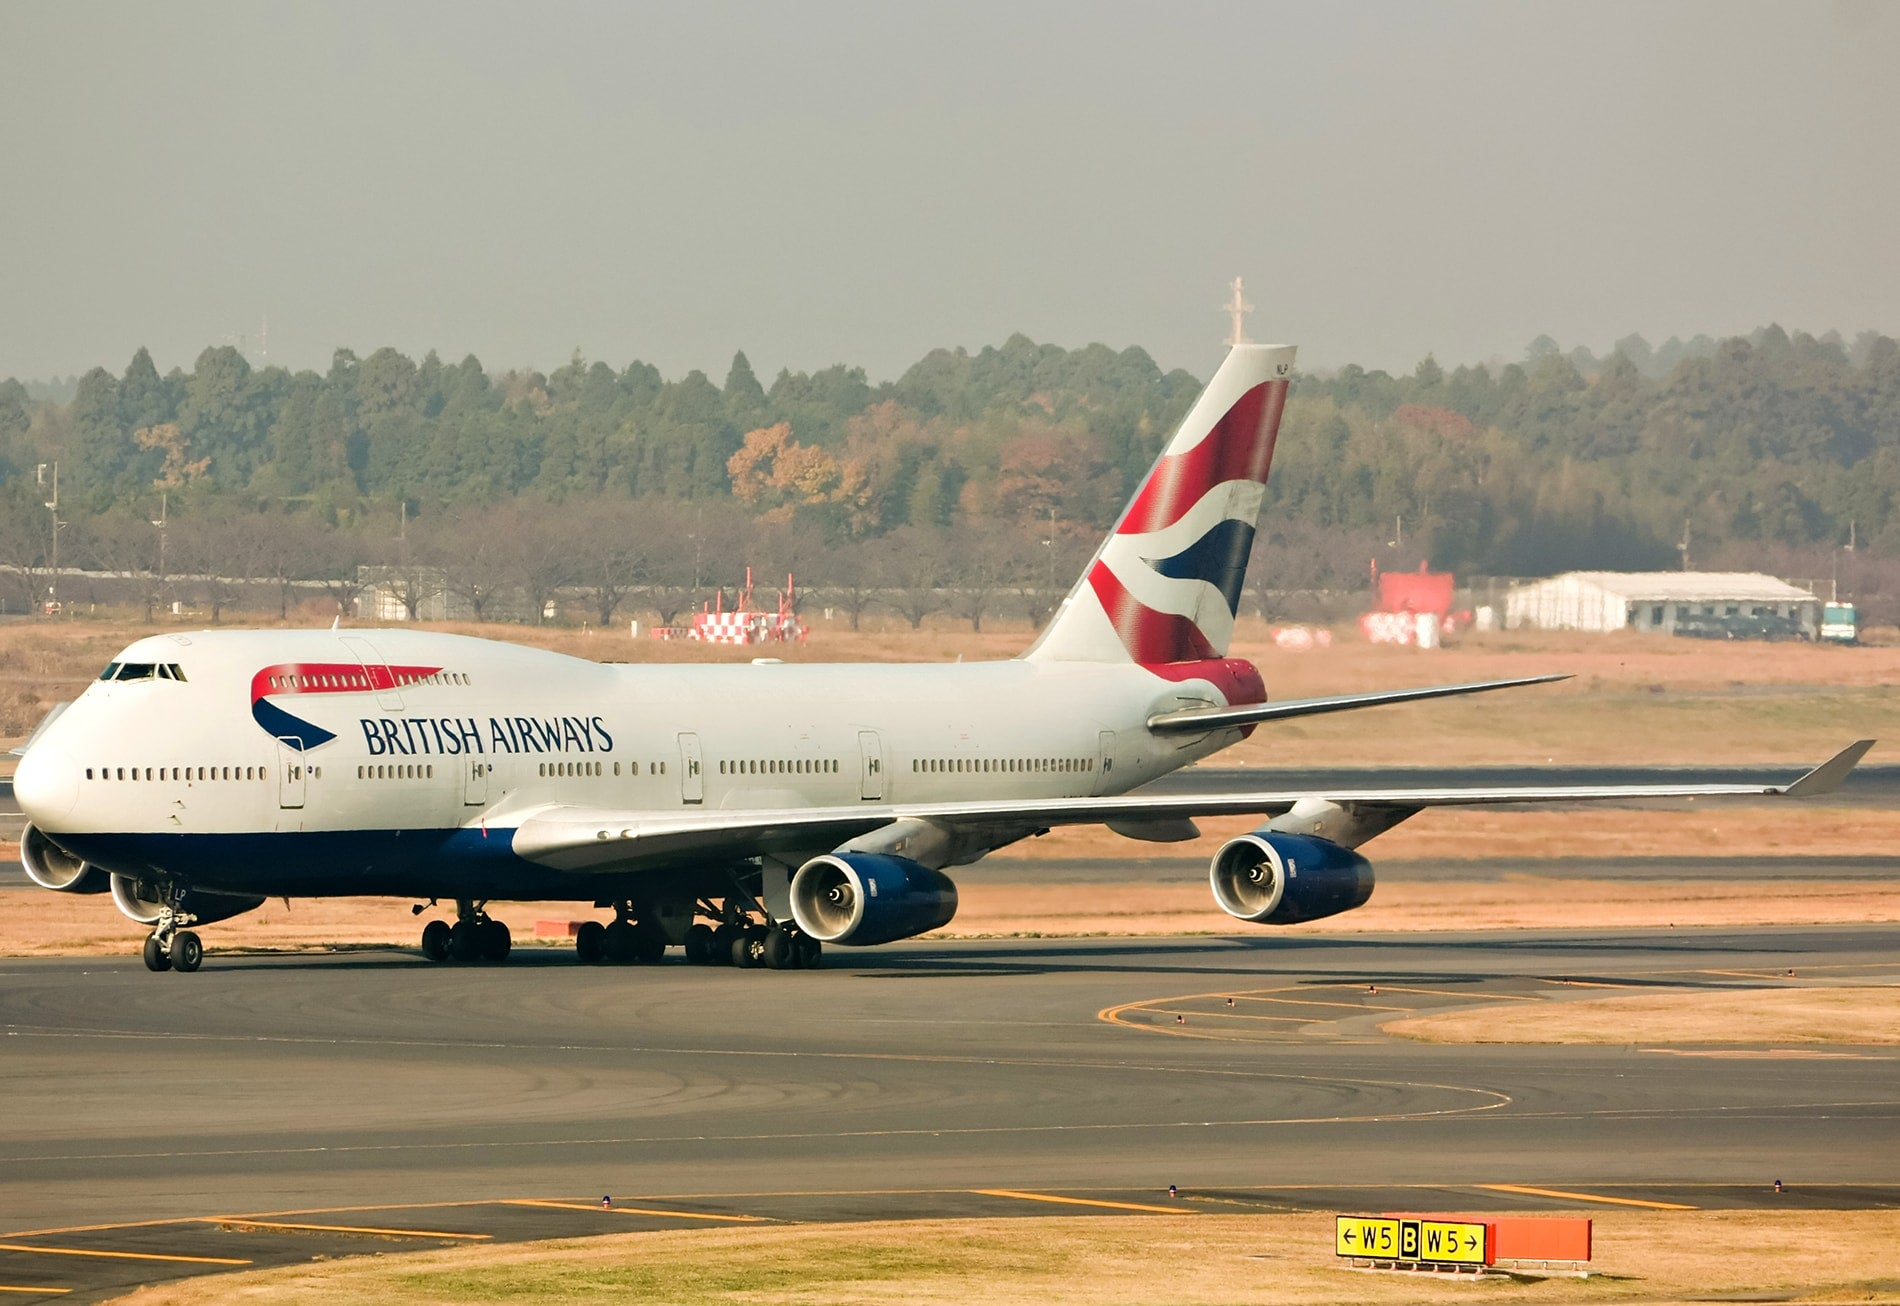 aereo british airways check in online edreams blog di viaggi